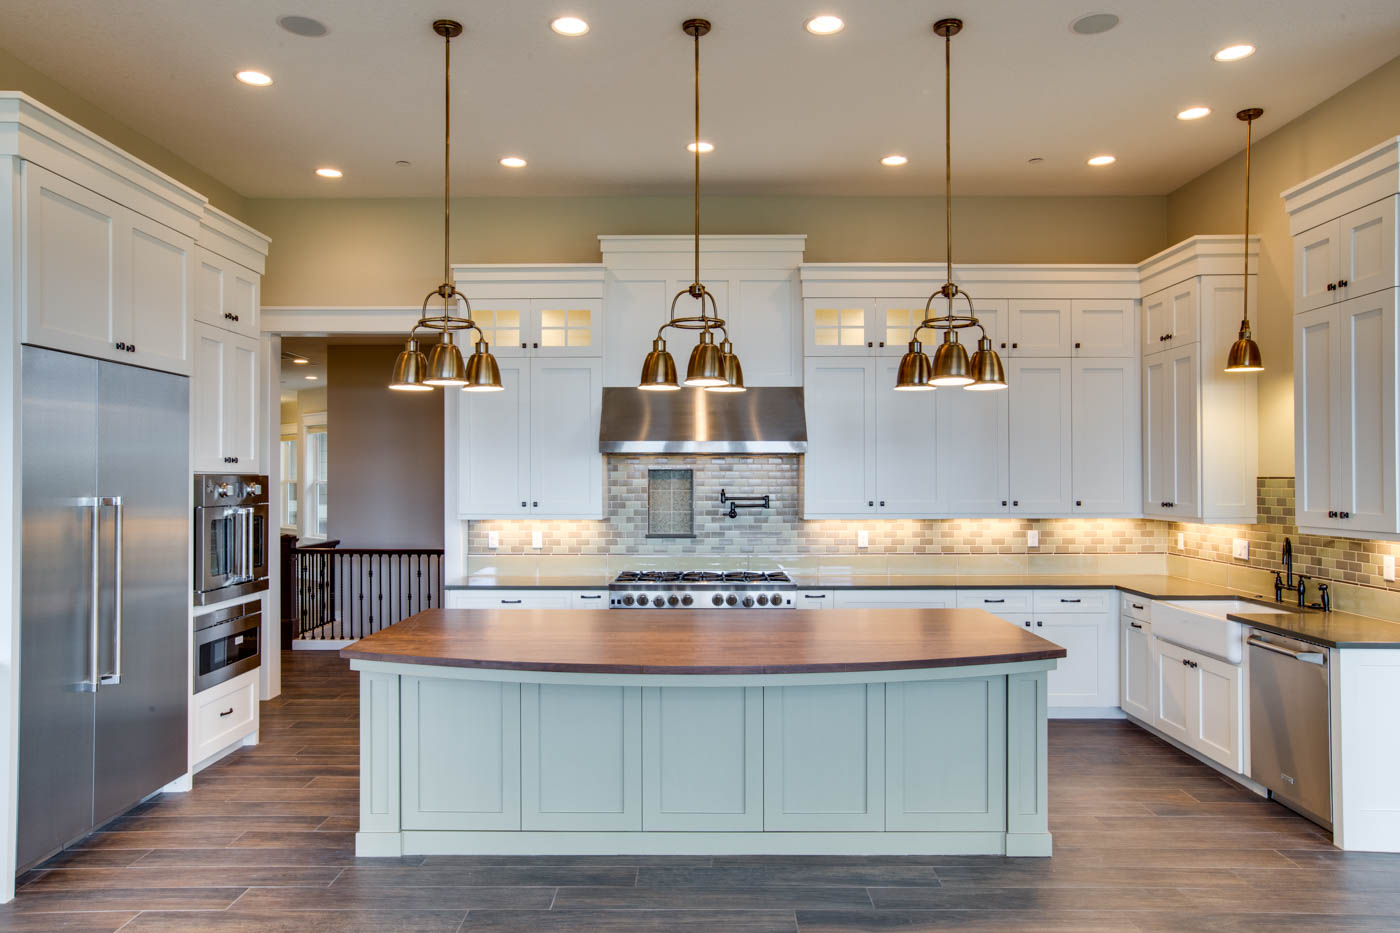 main_kitchen_17447-s-outlook-rd_043_webres